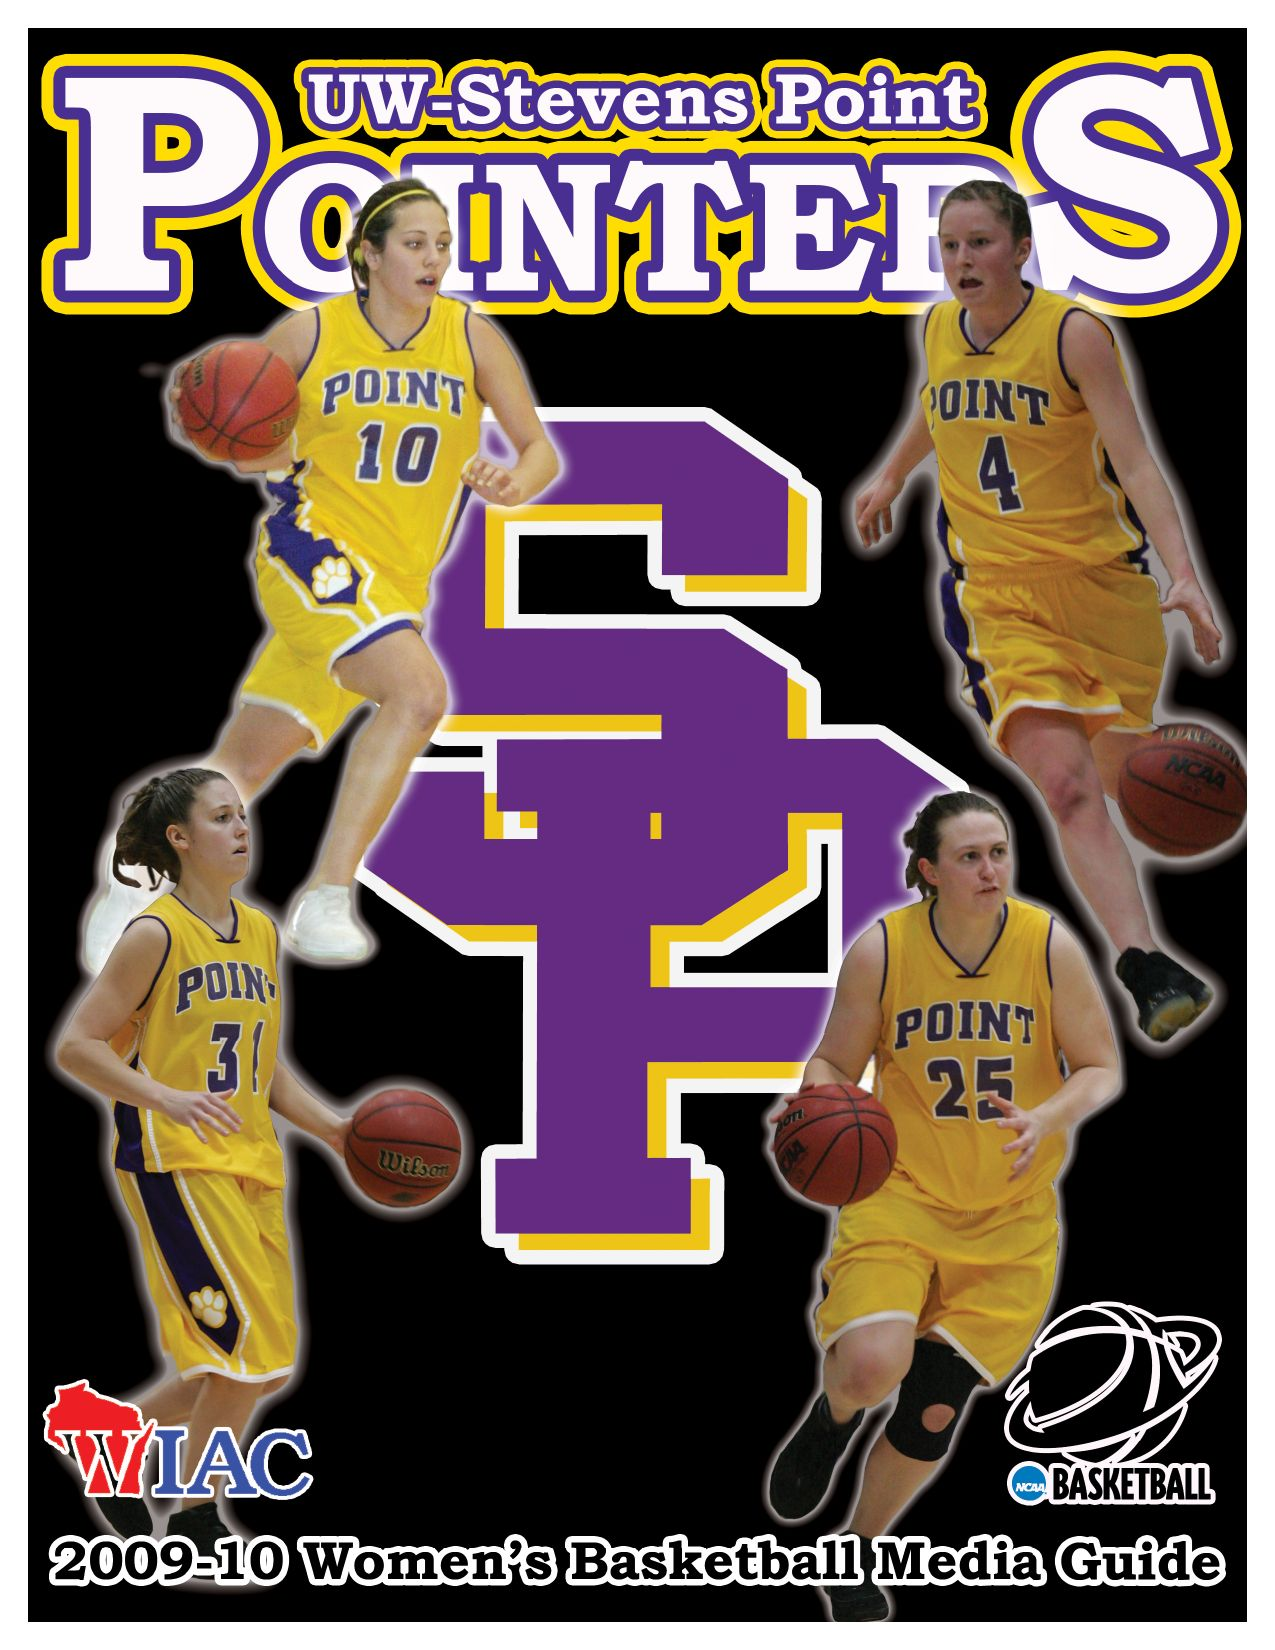 2009-10 Women s Basketball Media Guide by uwsp athletics - issuu 23d66ce42